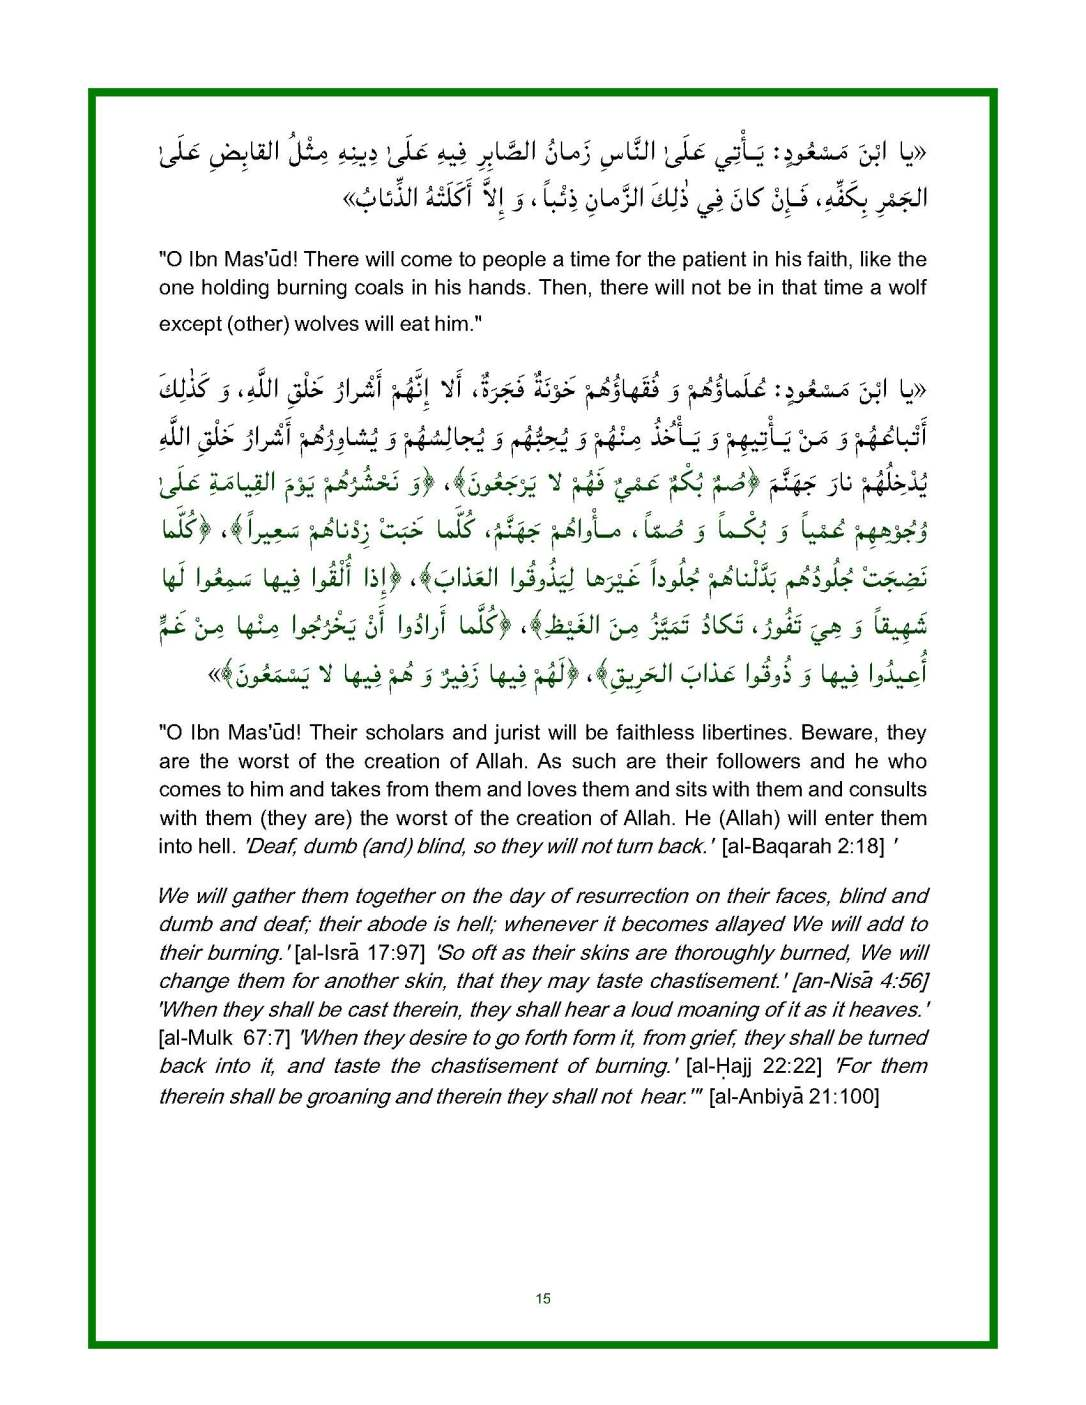 Spiritual-Advice-of-the-Messenger-of-Allah-for-Ibn-Masud-unlocked_Page_15